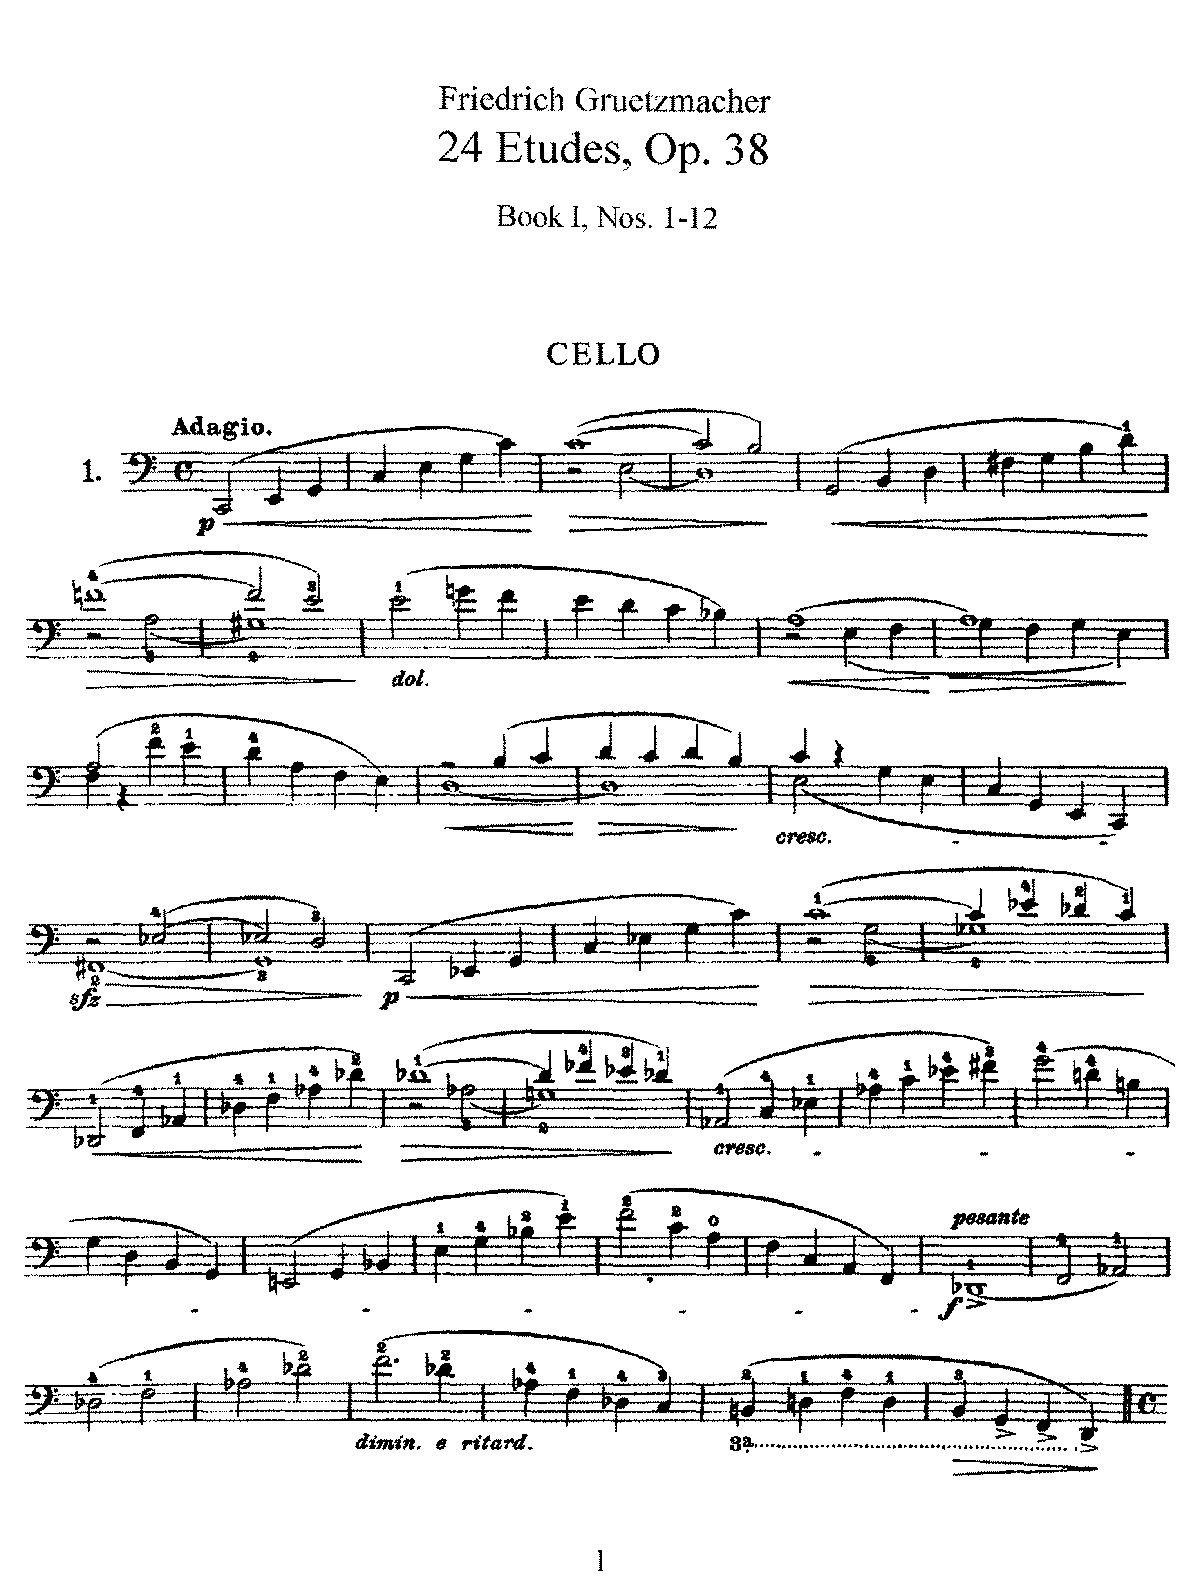 PMLP53335-Grutzmacher - 24 Etudes Op38 for cello book1.pdf